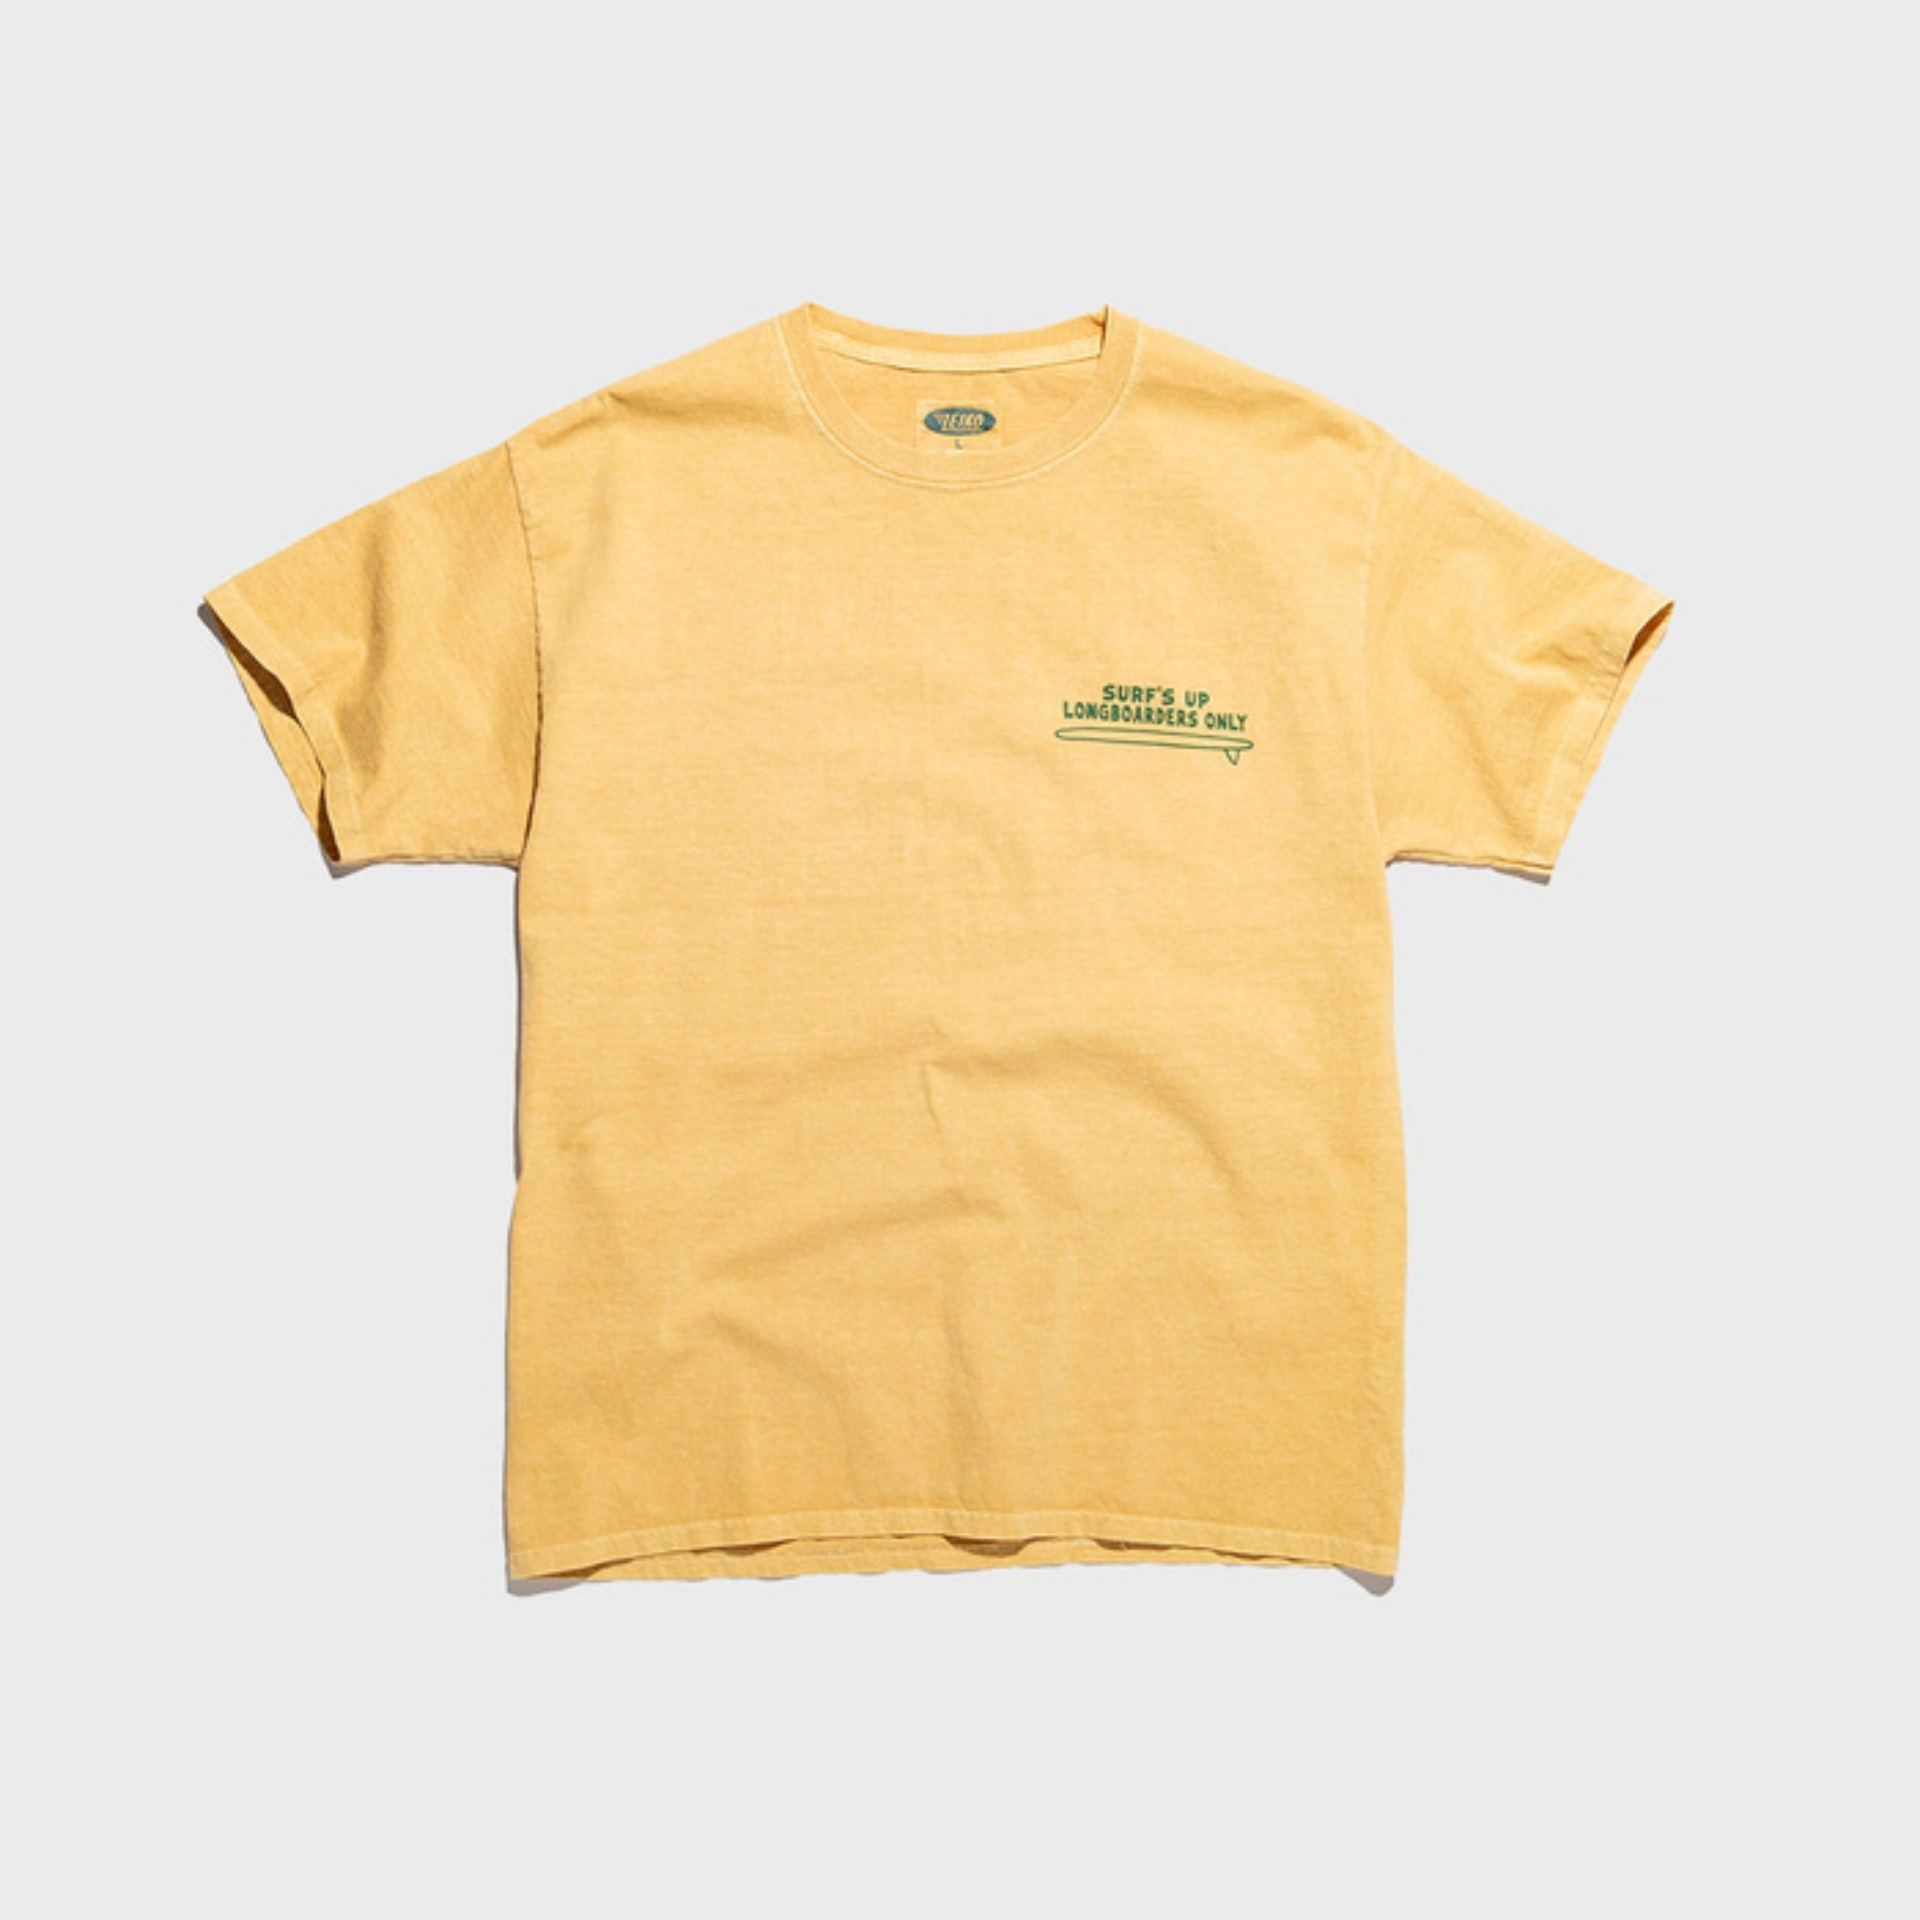 Original University Tee PENGUIN SURF(sand yellow)